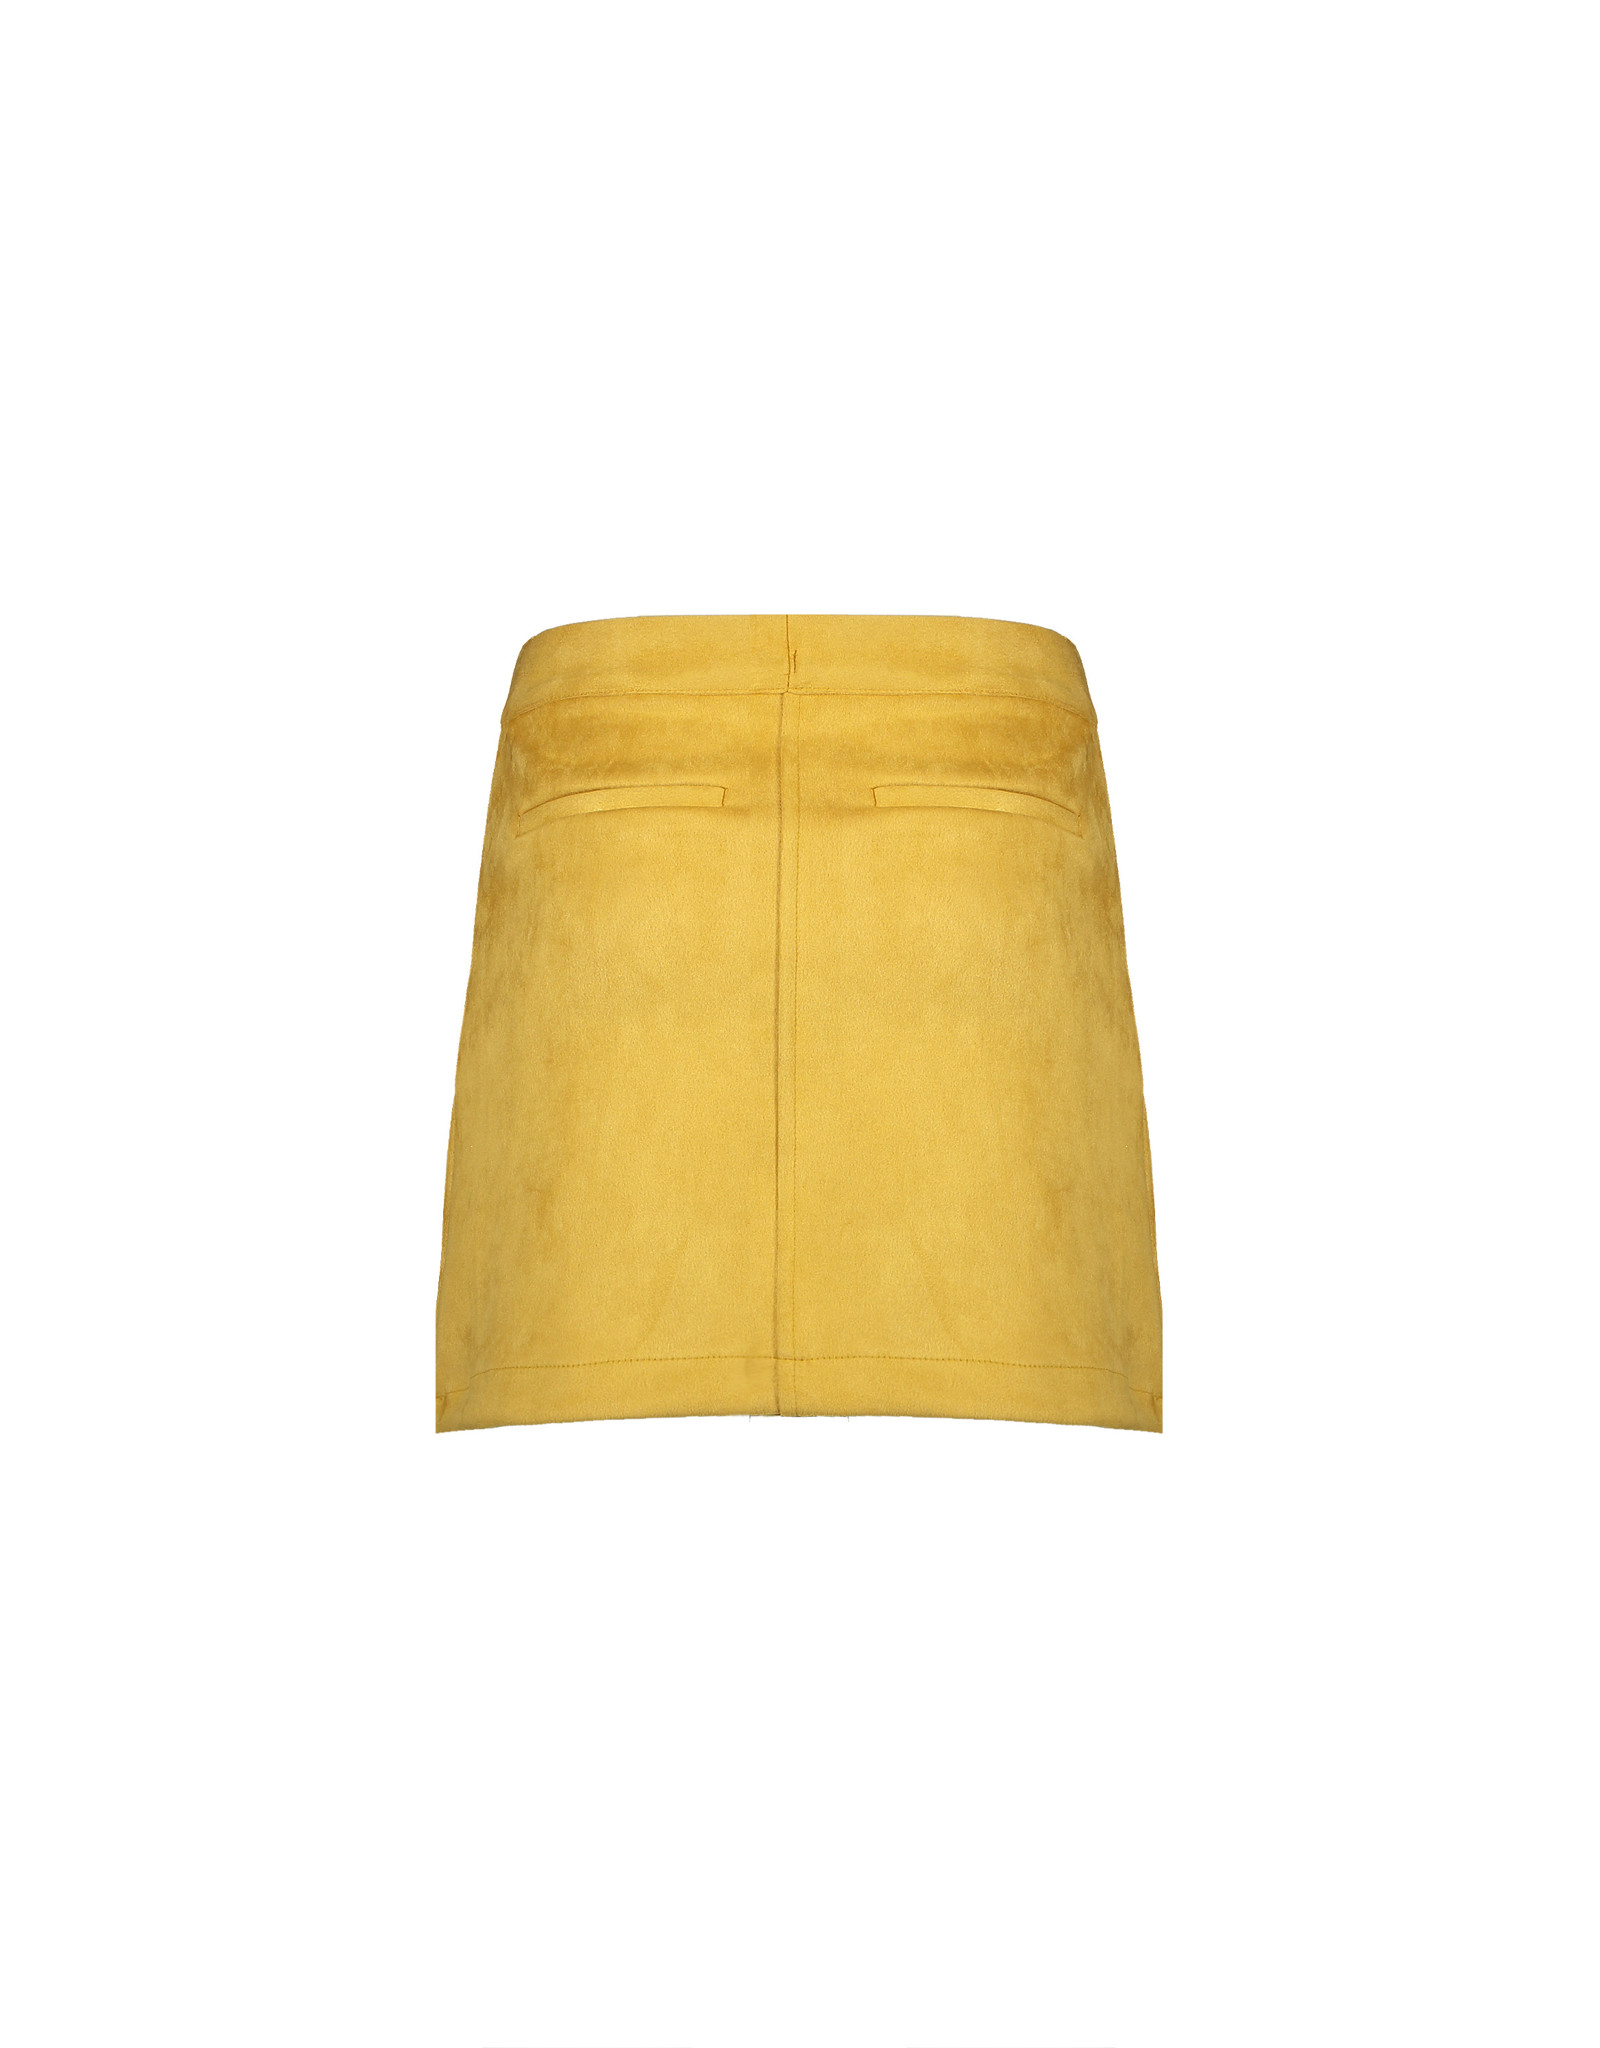 NoBell NoBell NishaB Soft Suede short A-line skirt YELLOW GOLD